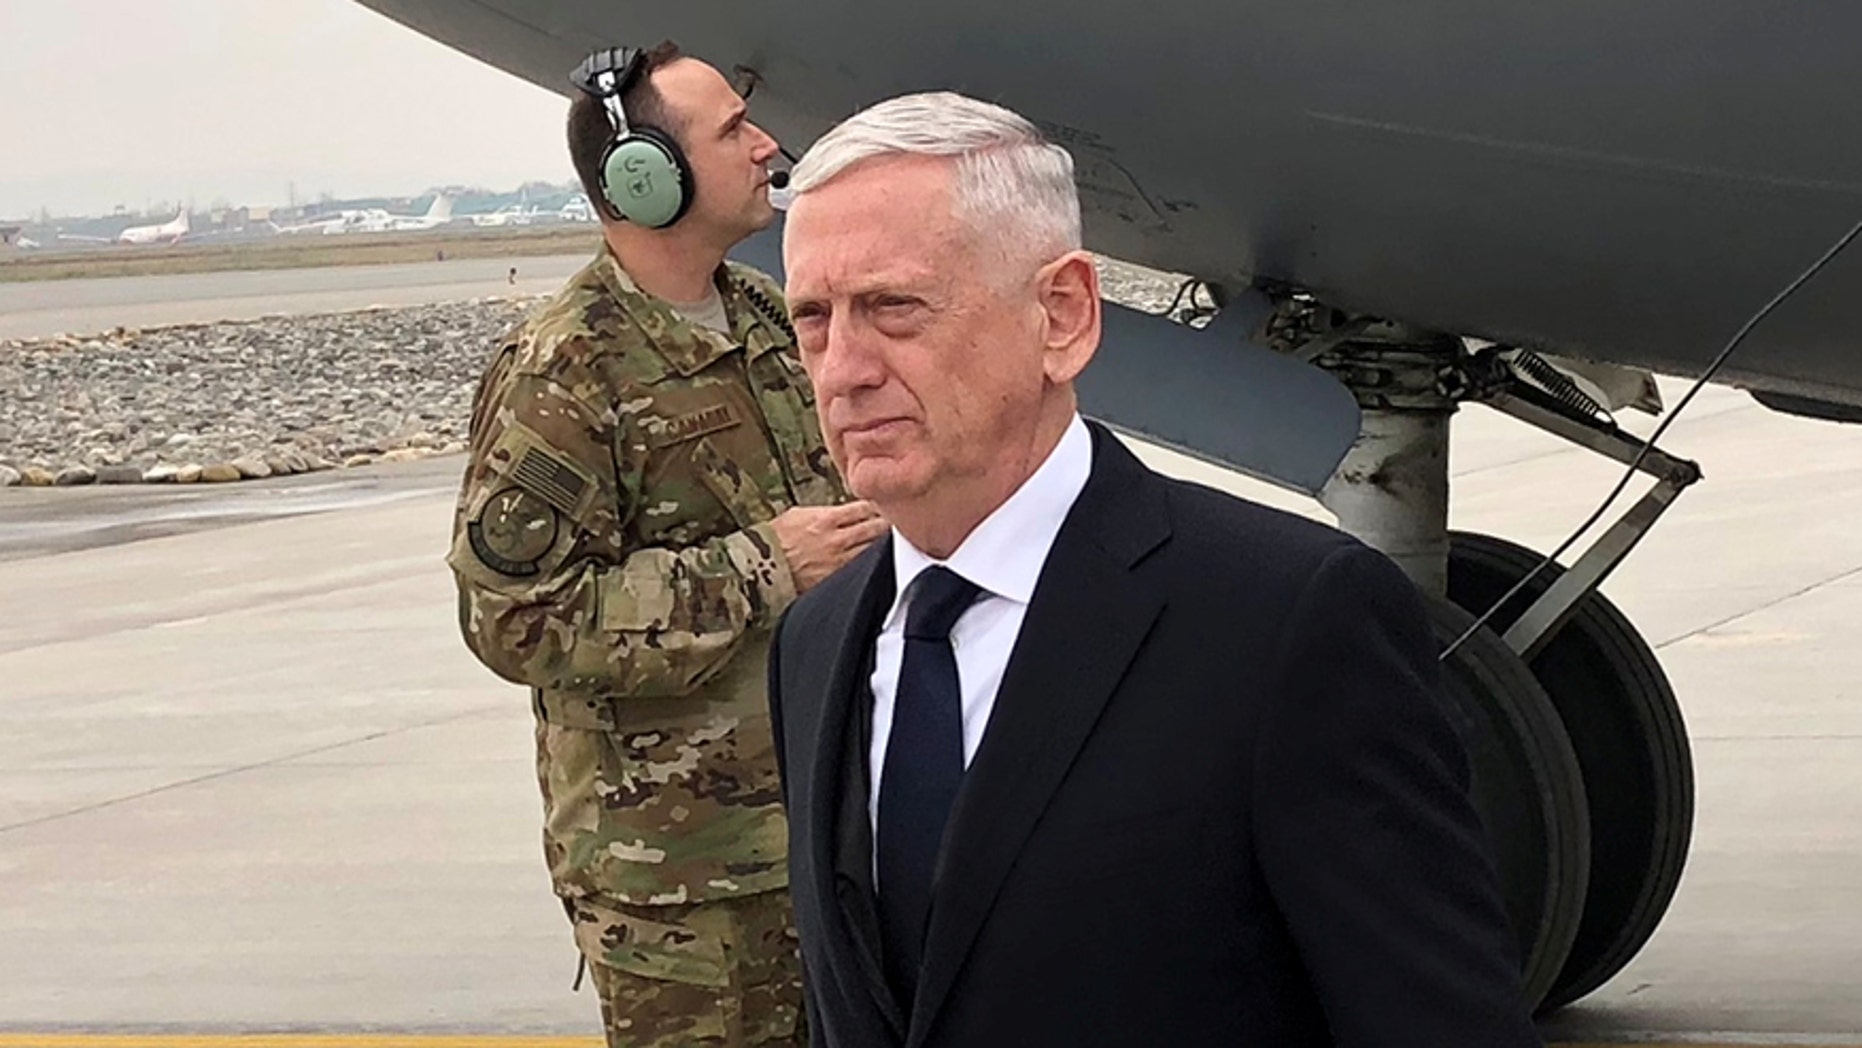 U.S. Defense Secretary Jim Mattis lands in Kabul on March 13, 2018 on an unannounced trip to Afghanistan.